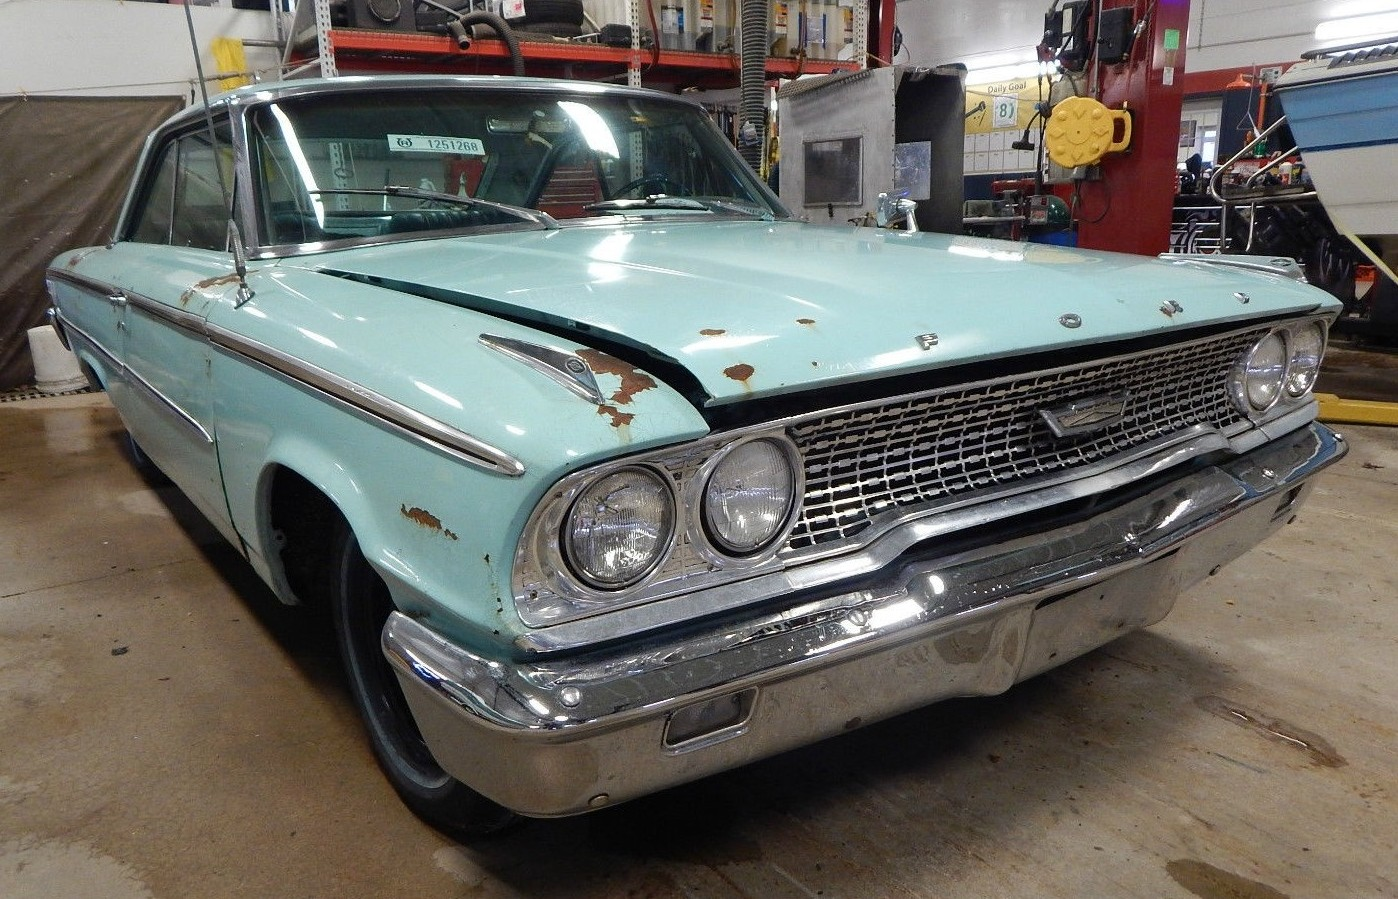 1963 ford galaxie parts ebay - Reader Don T Writes Hi Guys There Is A 1963 Ford Galaxie Fastback Z Code With Original Drive Train On Rawhide S Ebay Site I Work For Rawhide And